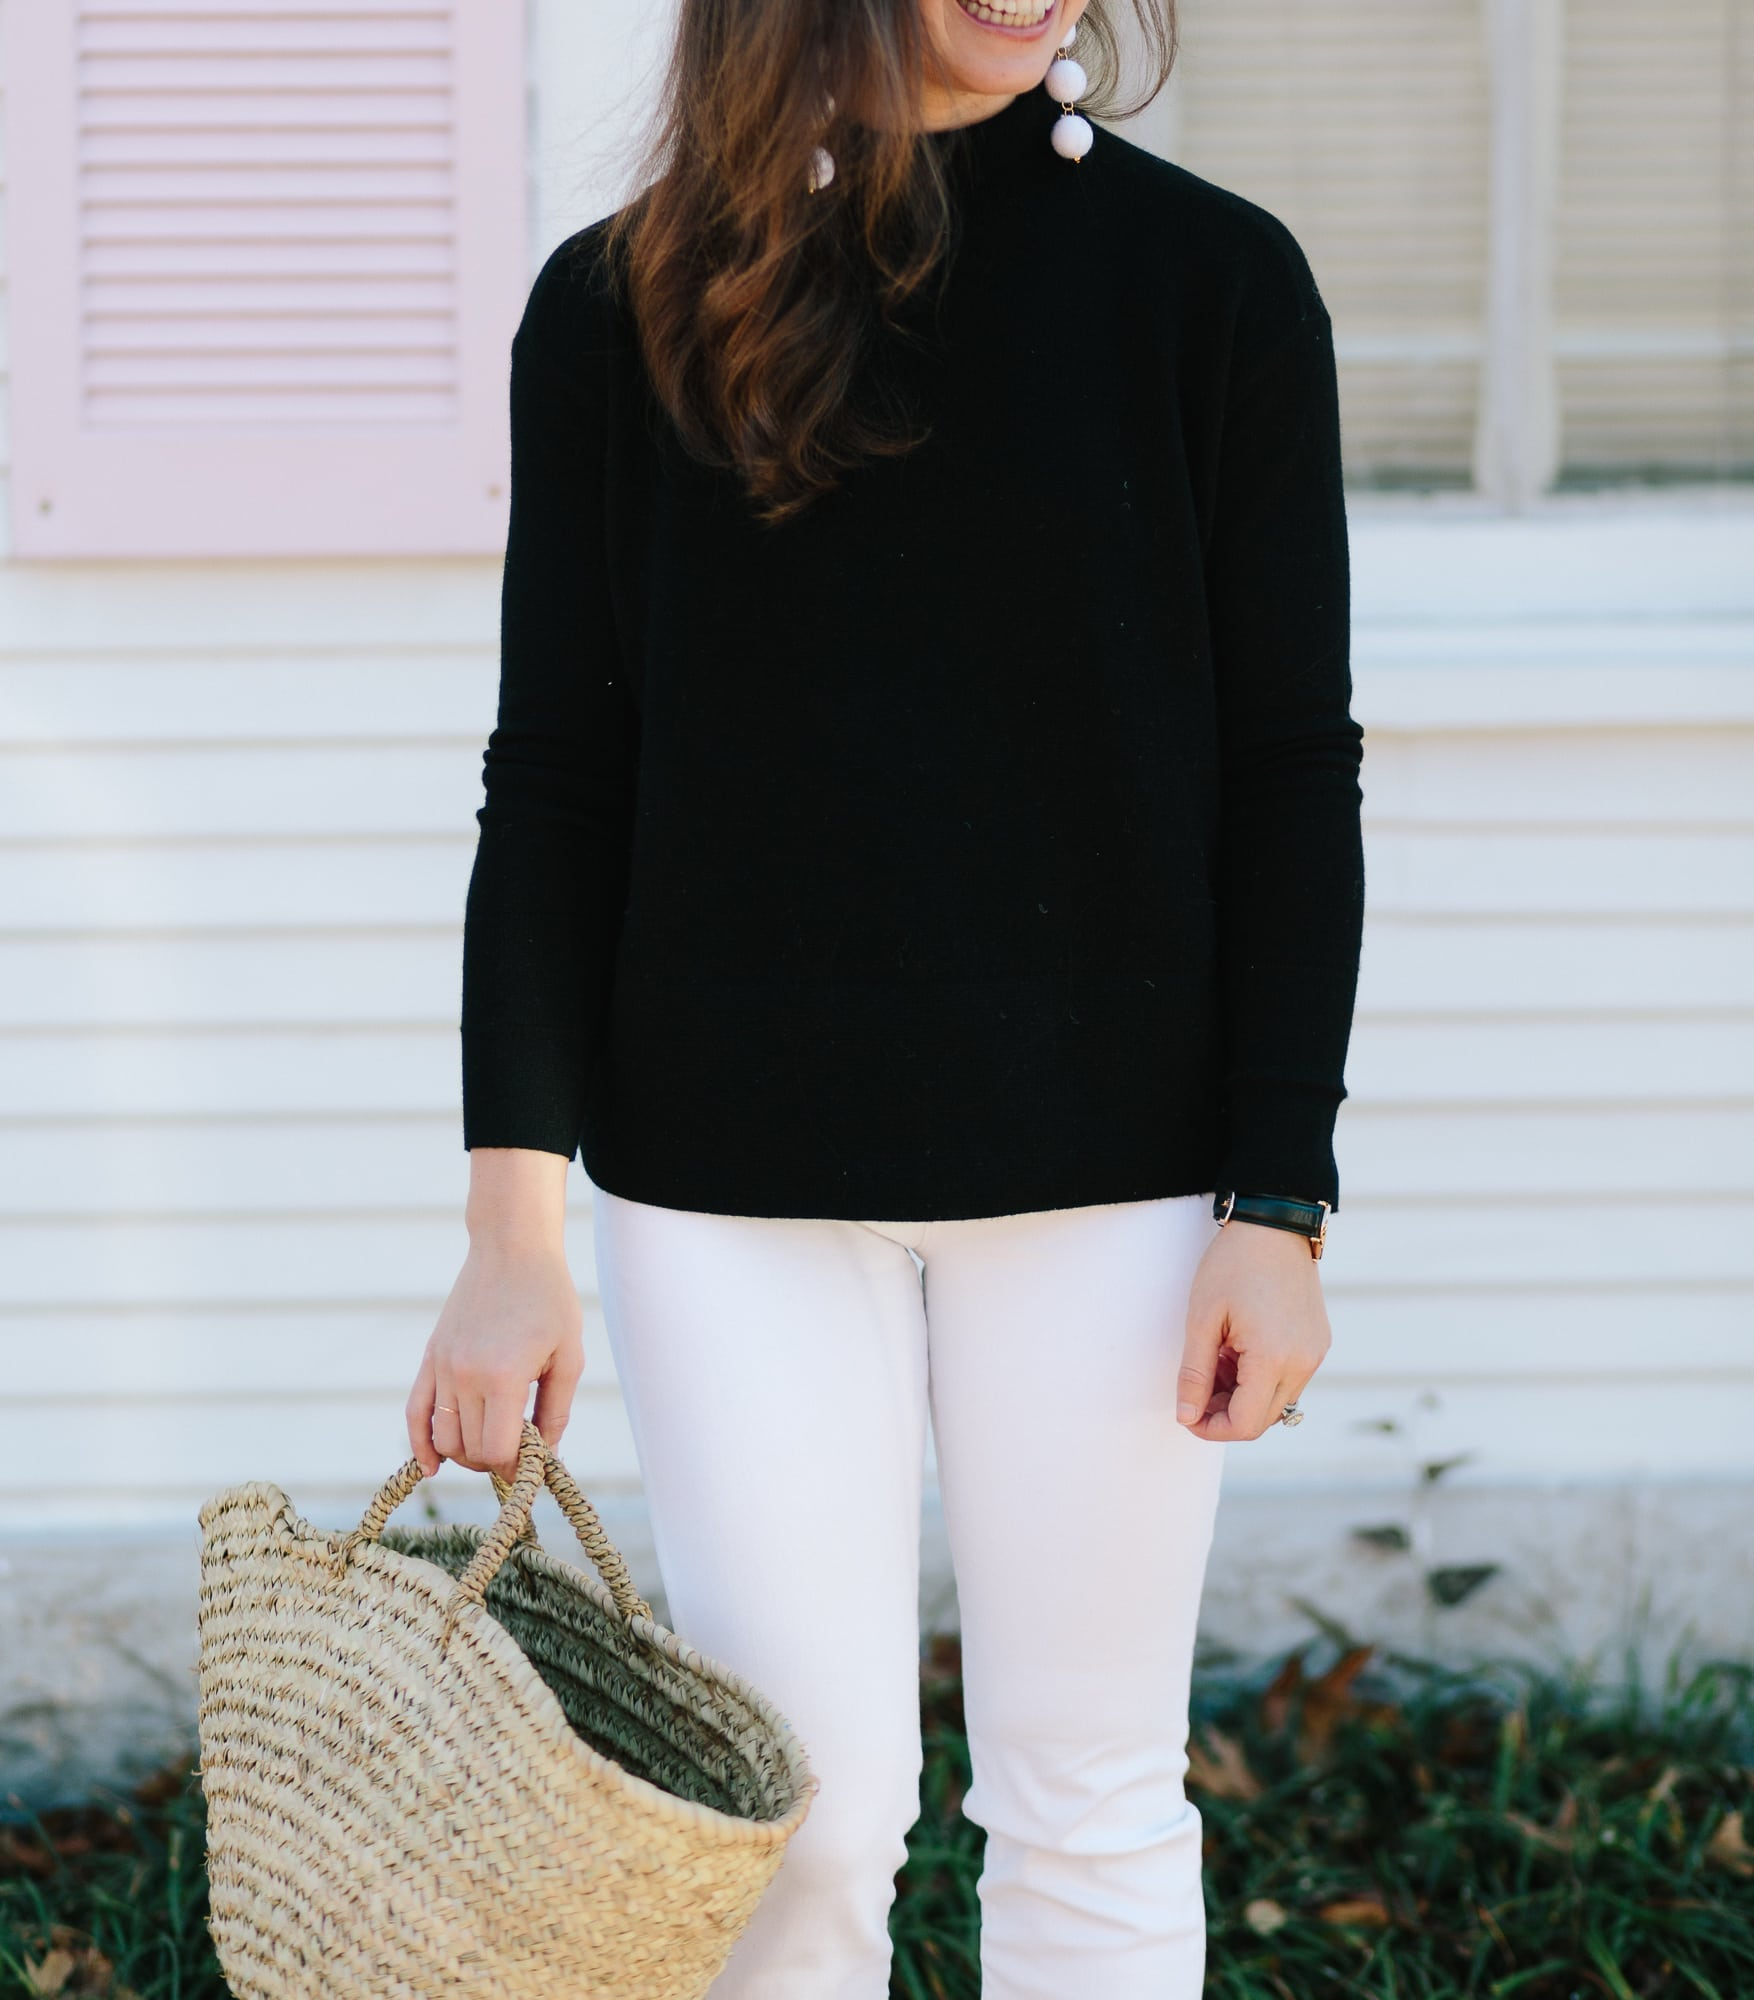 Black and White Outfit on A Dash of Details